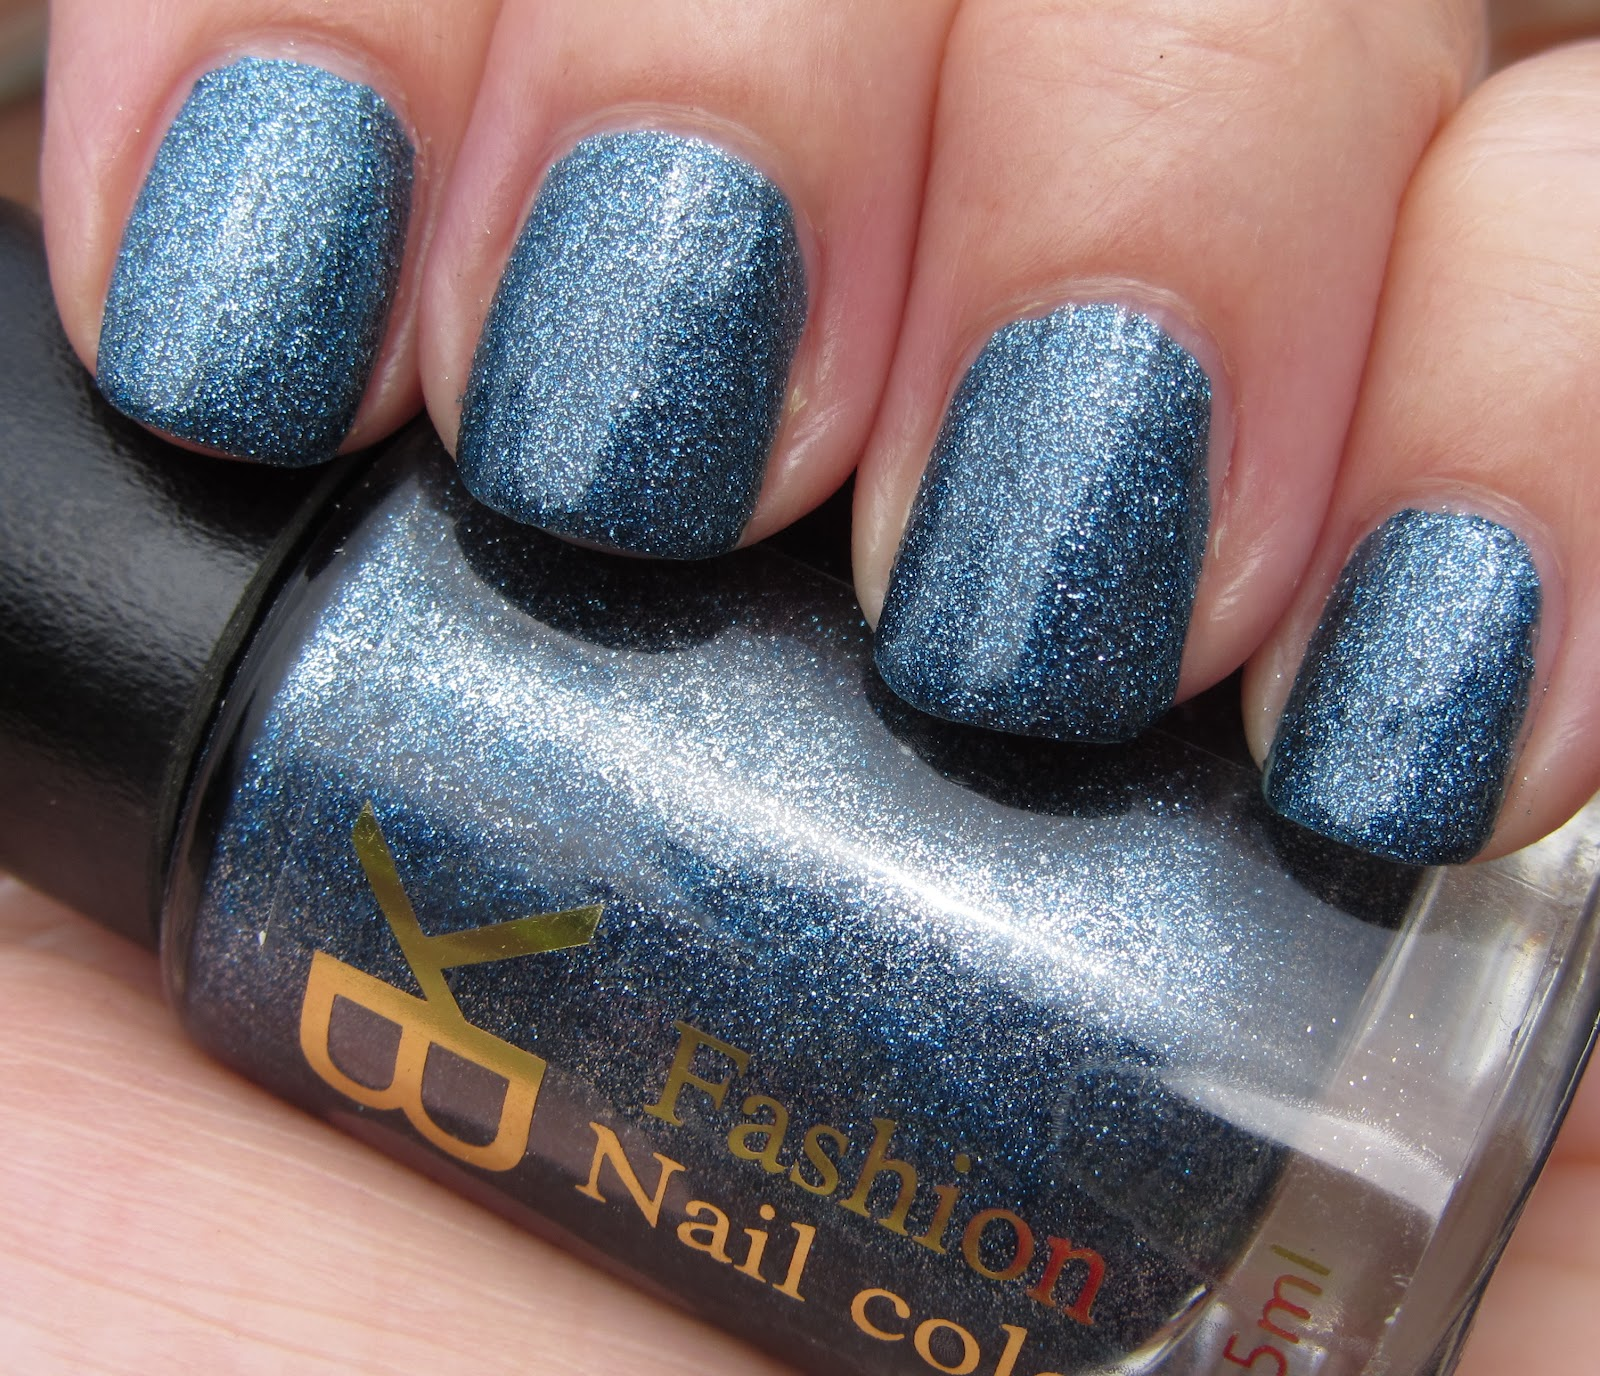 Bk Fashion Nail Color Navy Blue Silver Shimmer 04 Swatches Review